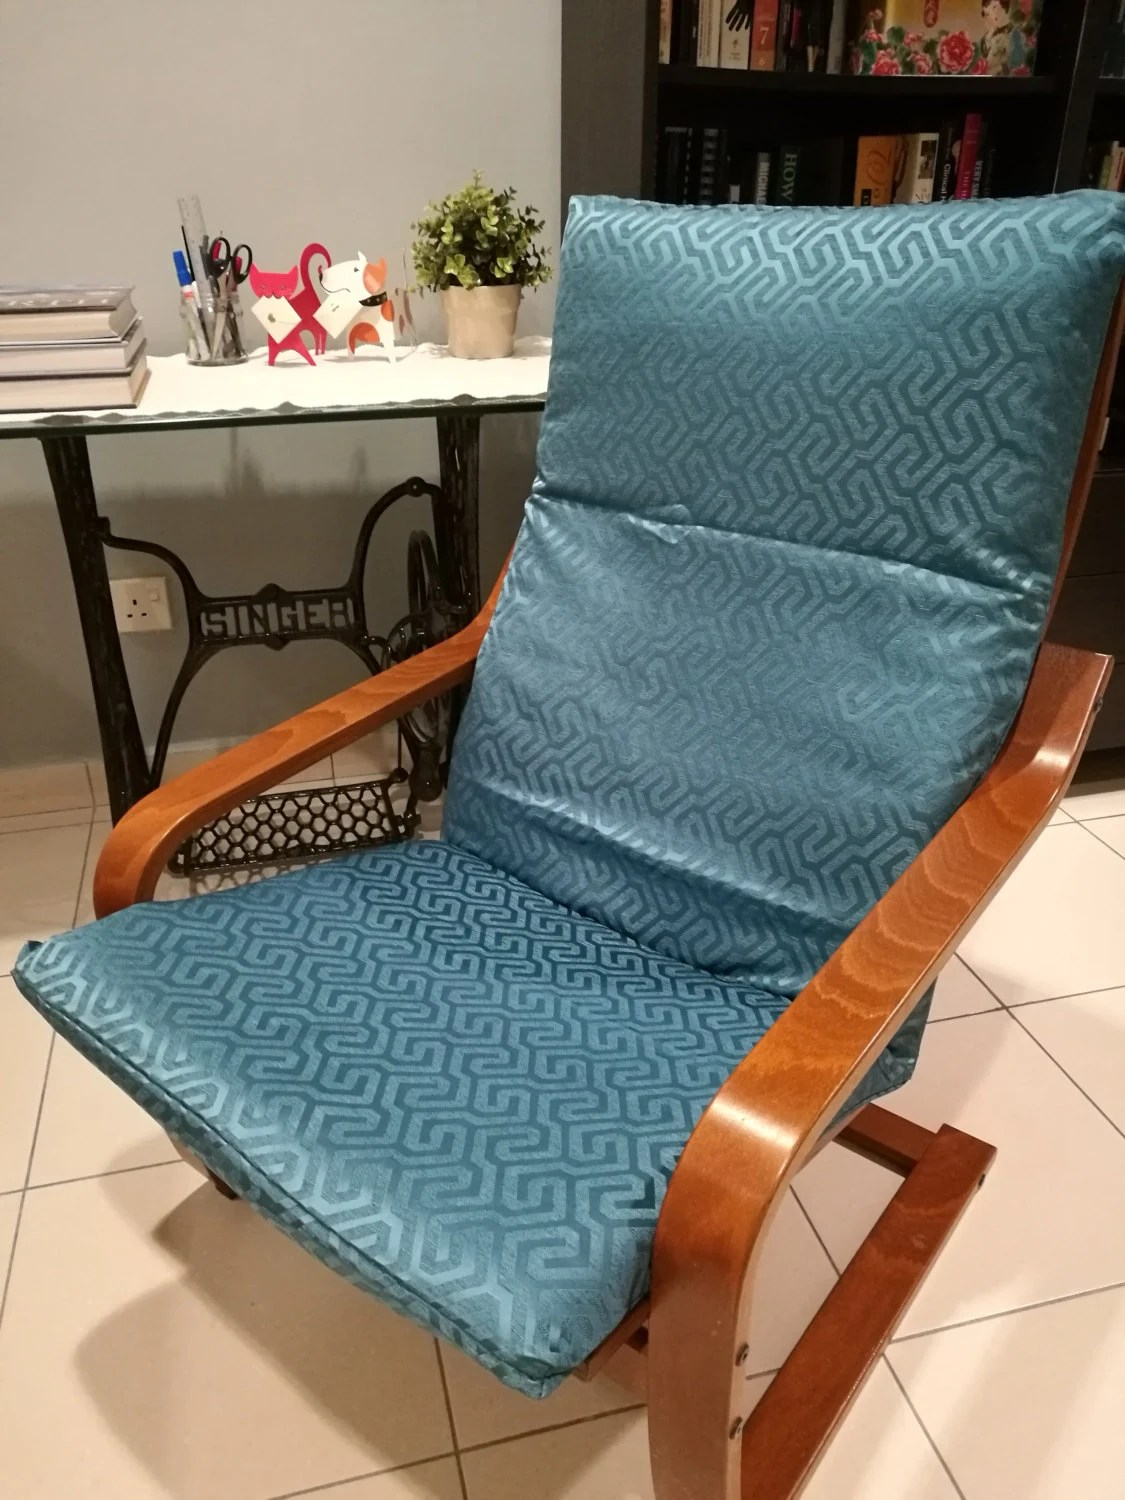 ikea replacement chair covers ergonomic question poang cushion cover maze print